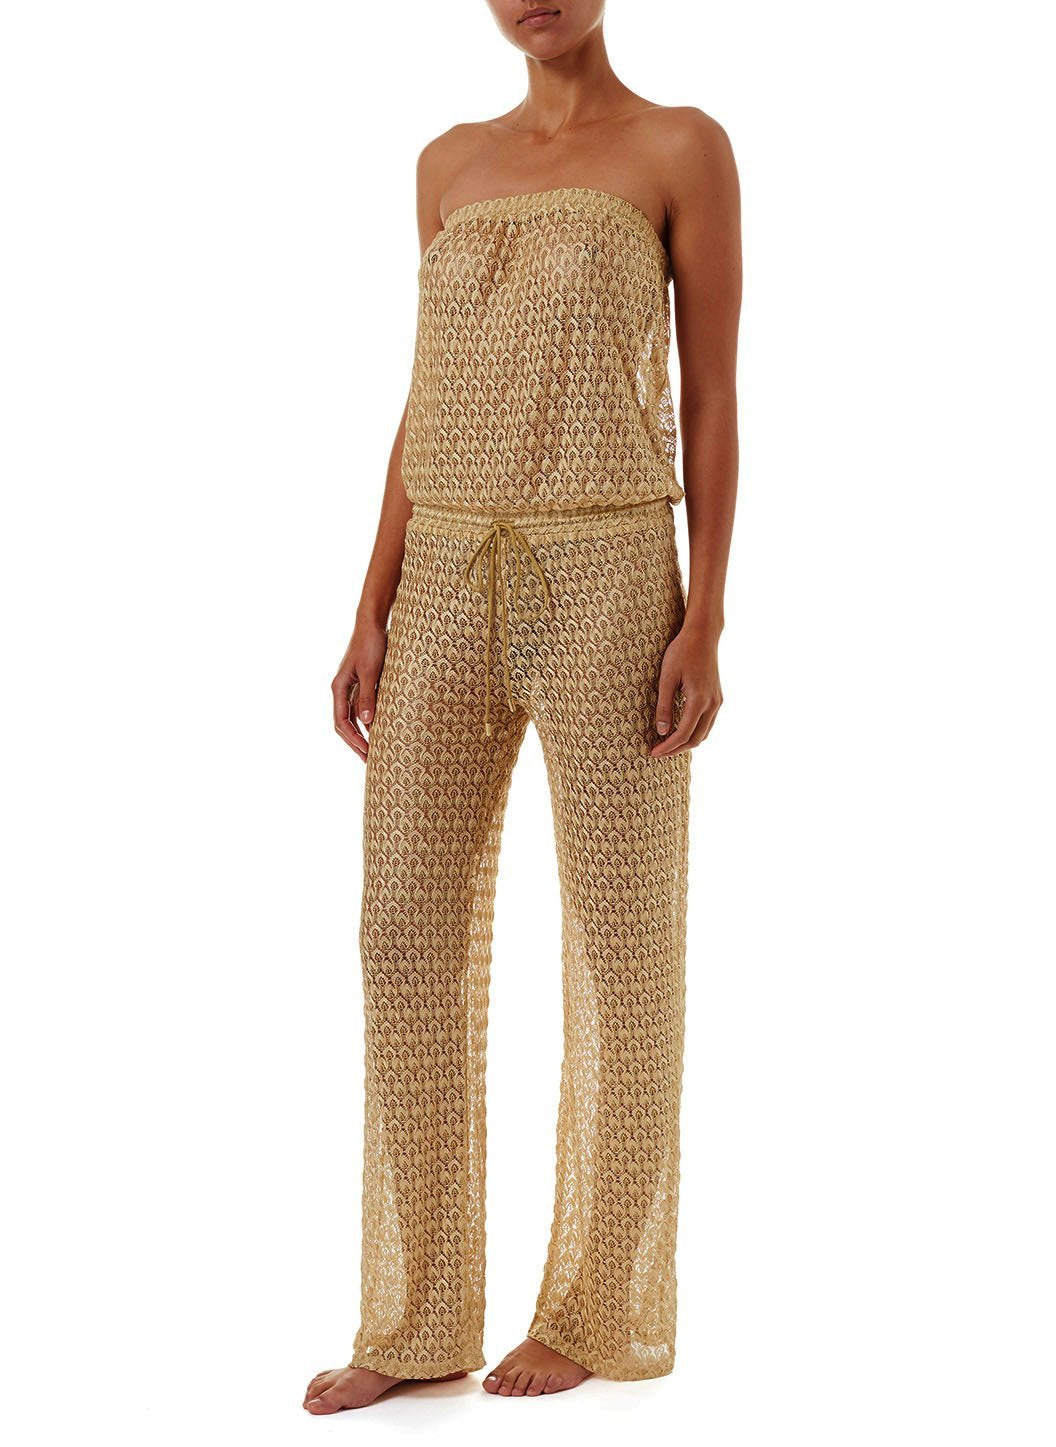 grace gold knit bandeau jumpsuit 2019 F